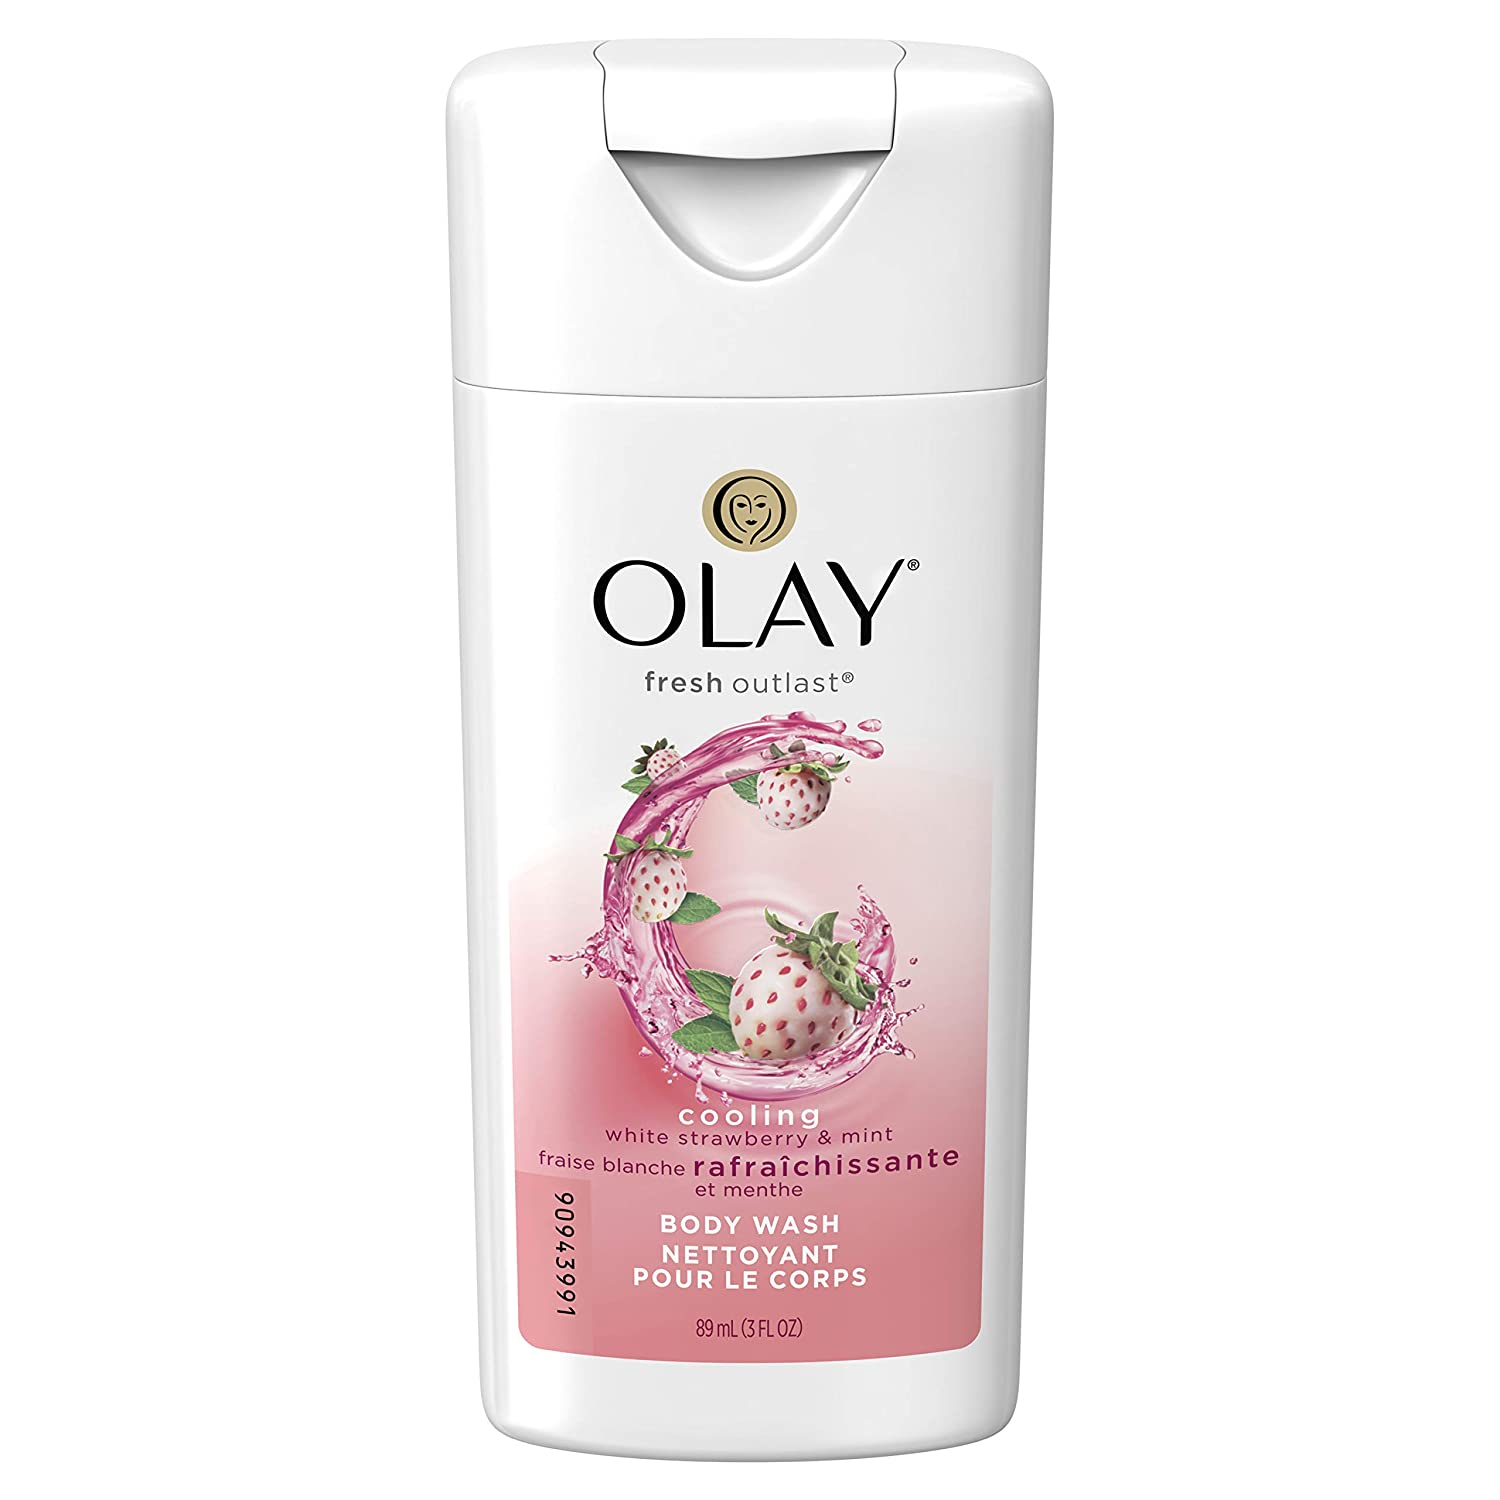 Olay Fresh Outlast Cooling White Strawberry & Mint Body Wash, 3.0 Ounce (pack Of 24)